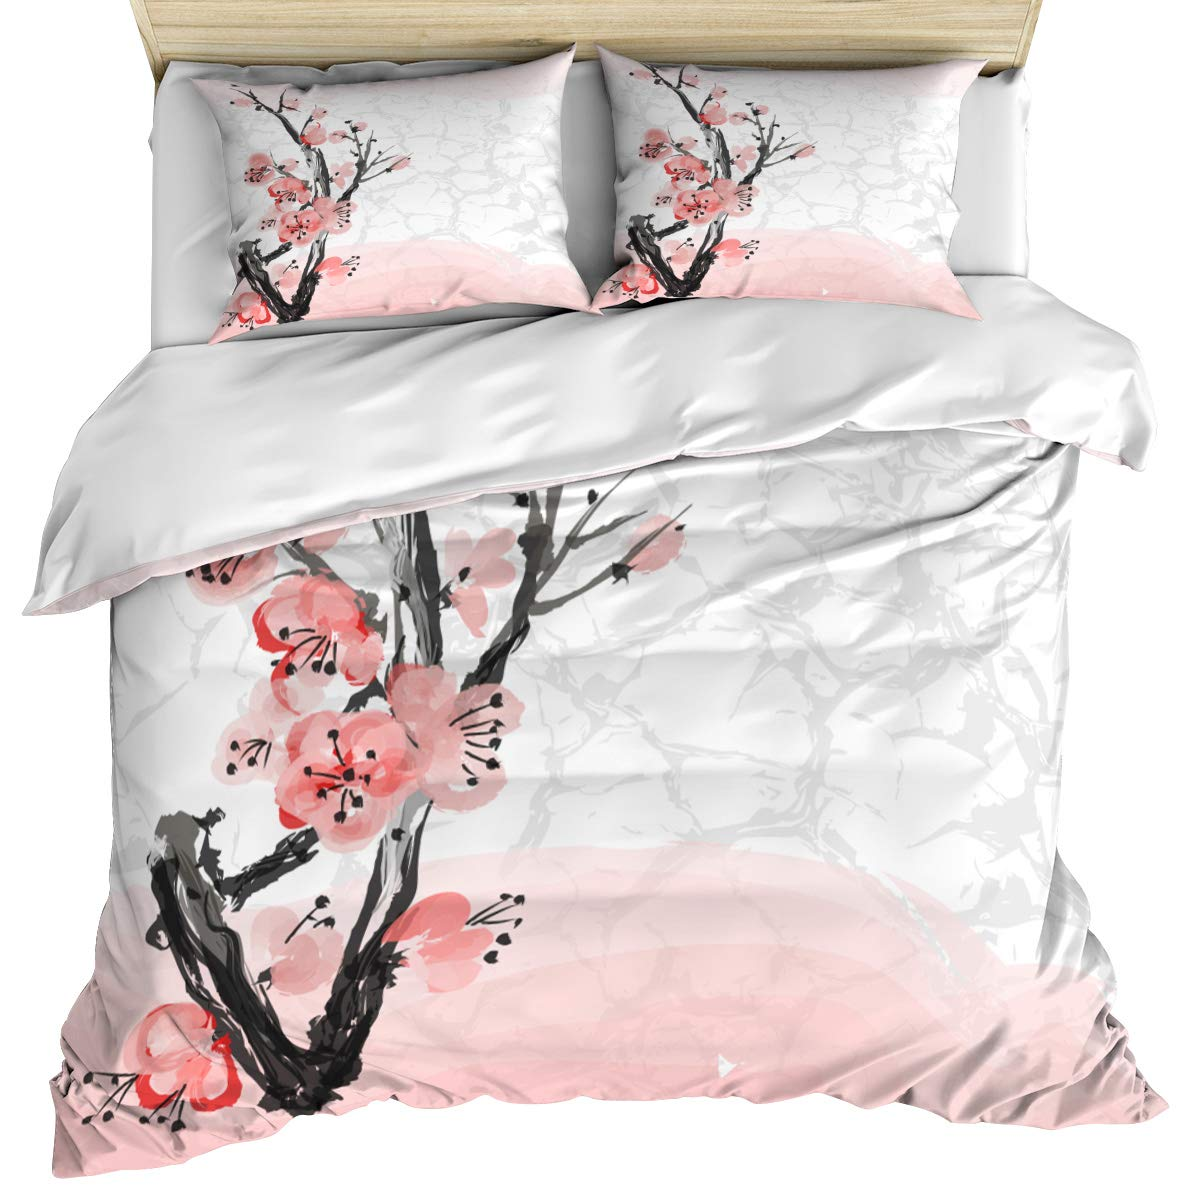 Floral 3 Piece Bedding Set Comforter Cover King Size, Japanese Cherry Blossom Sakura Blooms Spring Inspirations Print,Duvet Cover Set Bedspread Daybed with Zipper Closure for Kids/Teens/Adults